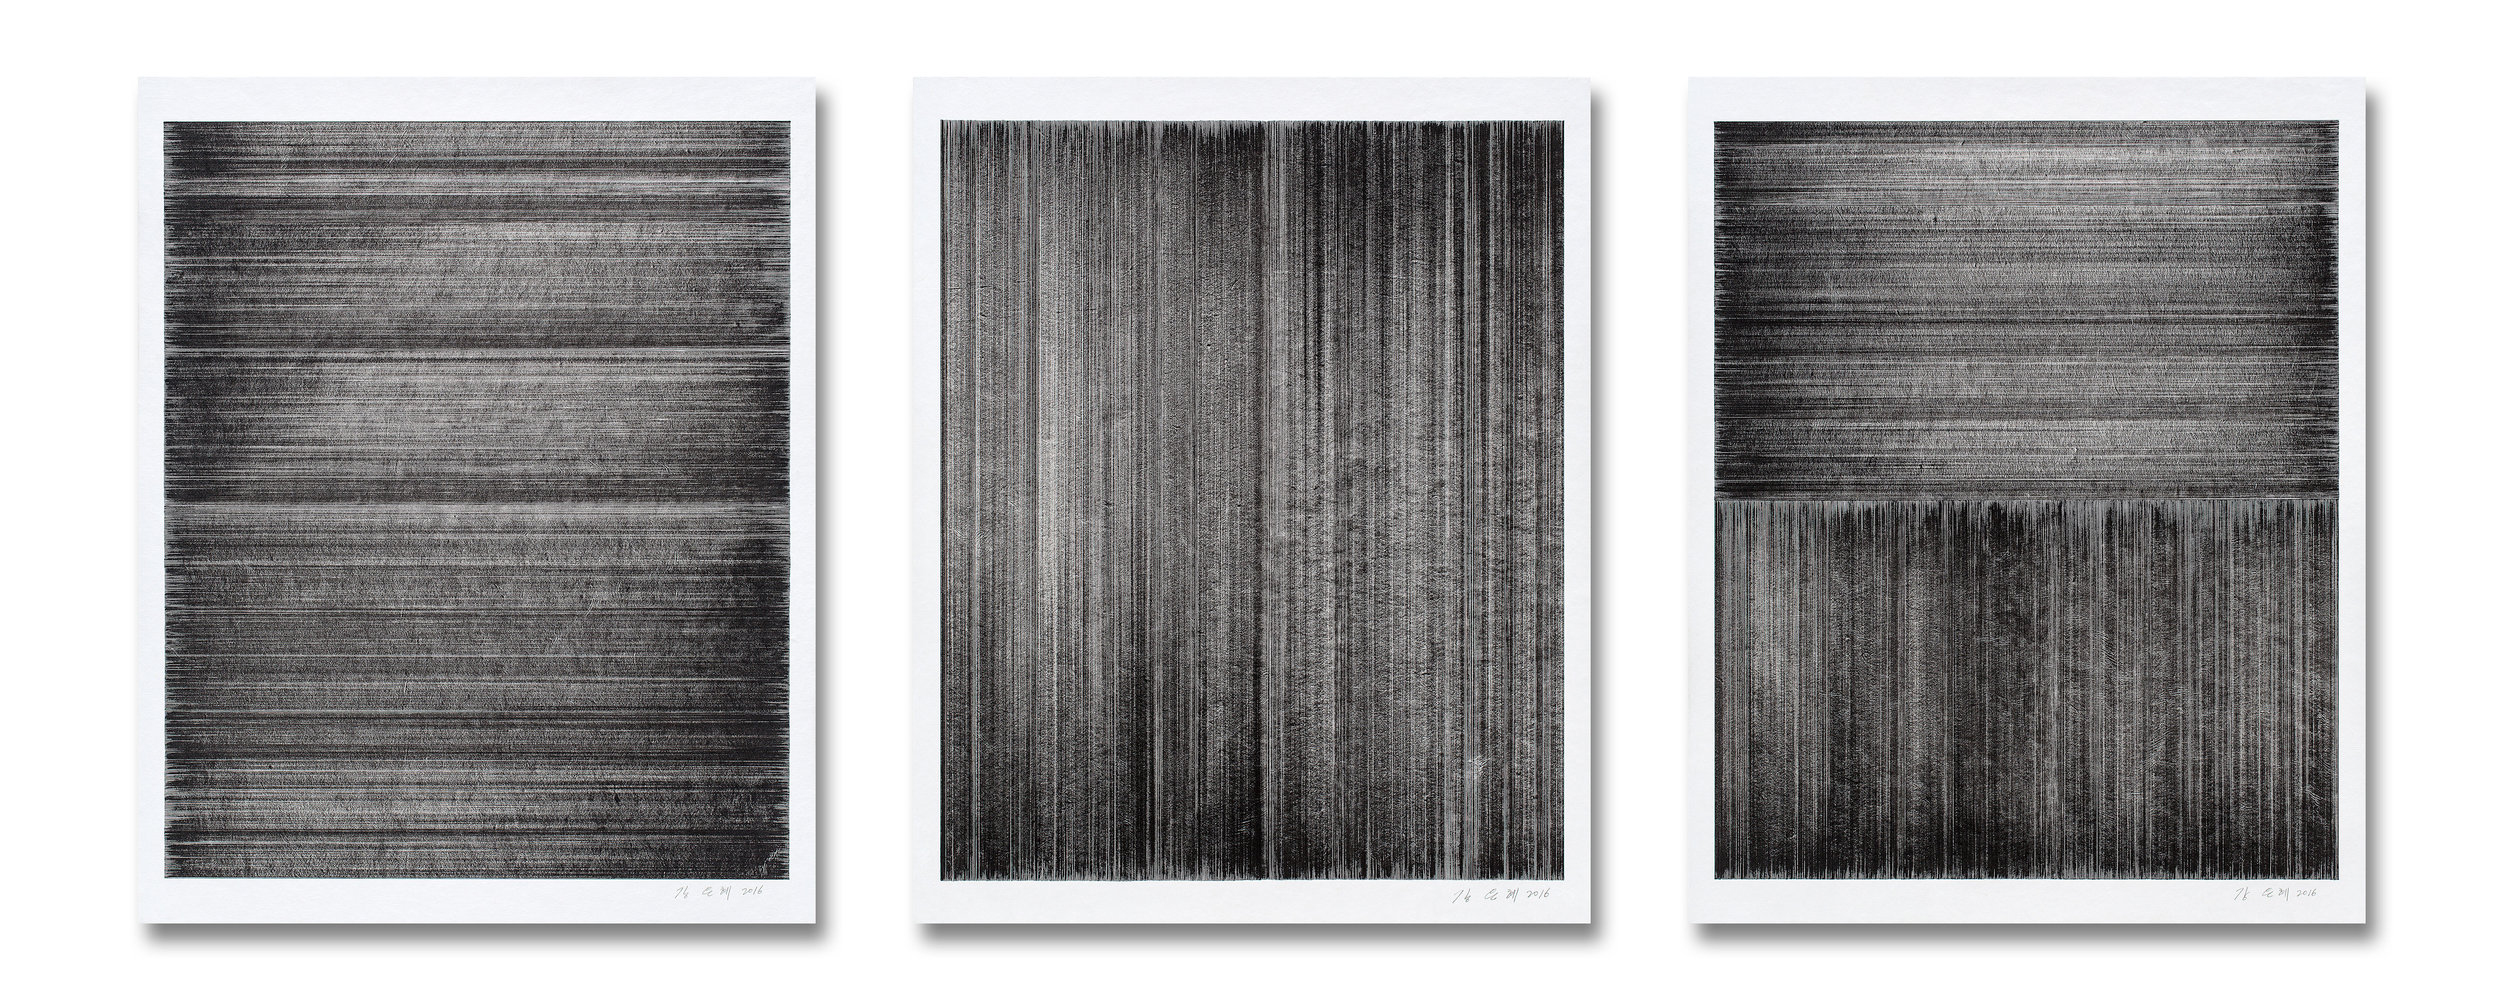 Meditation No.08, 09, 10    Sumi-ink Drawing on Rice paper  70x90 (cm) each  2016